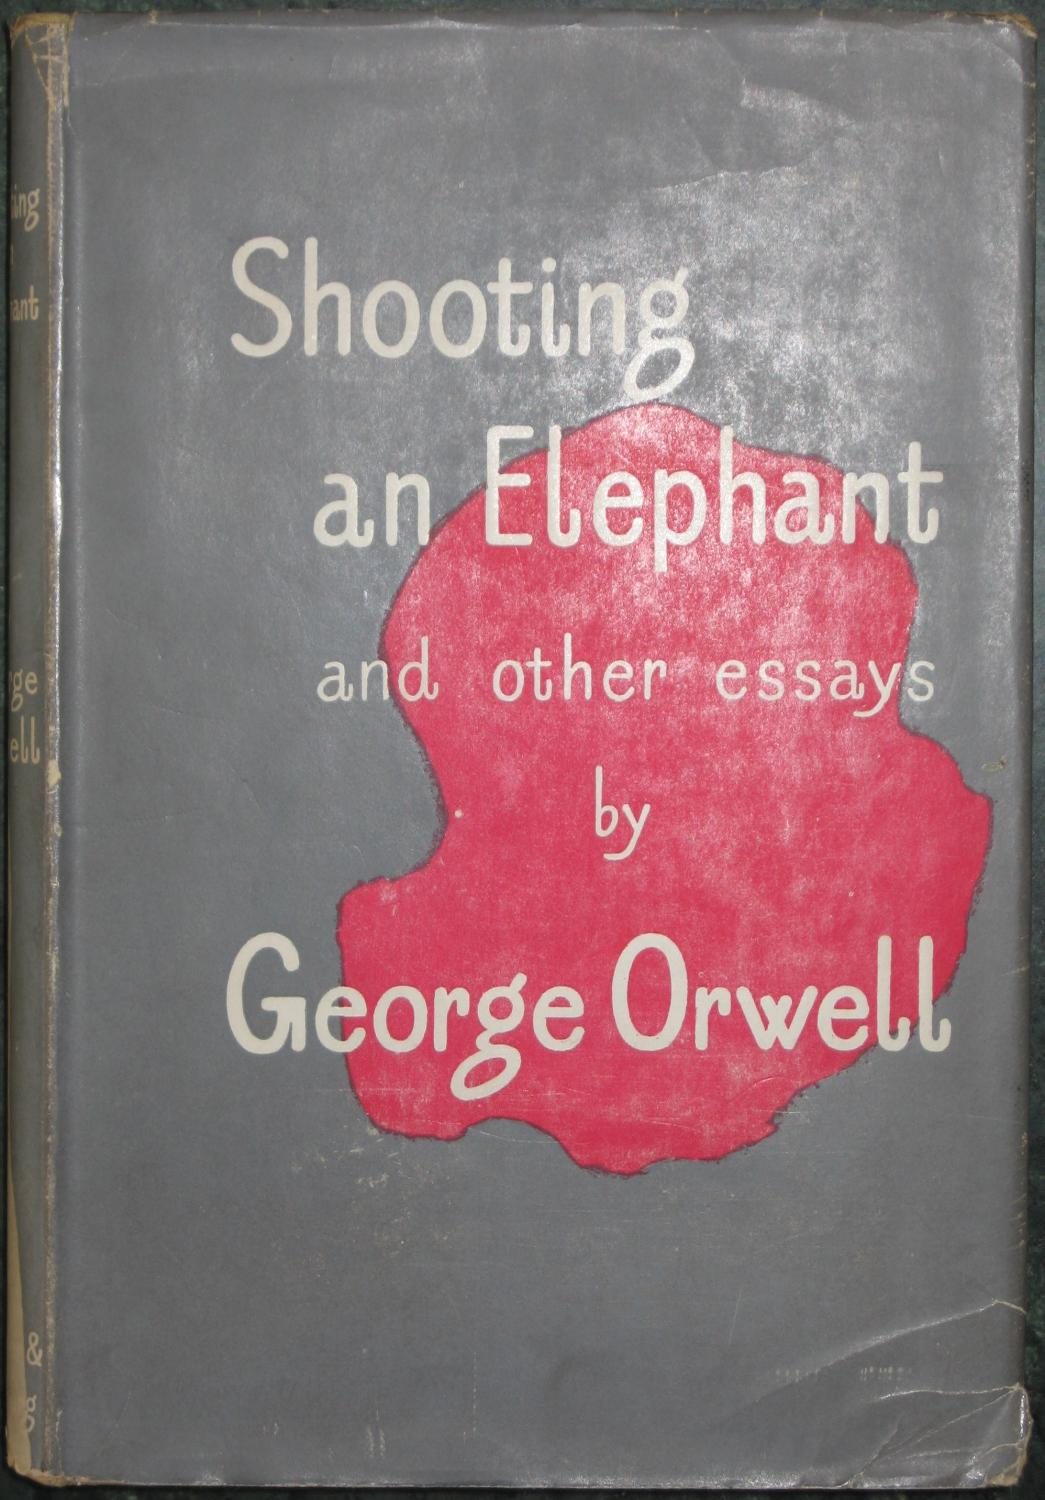 essays on george orwells shooting an elephant Sample paper on shooting an elephant essay identify, explain and contextualize the idea of shooting an elephant as presented in george orwell's narrative.